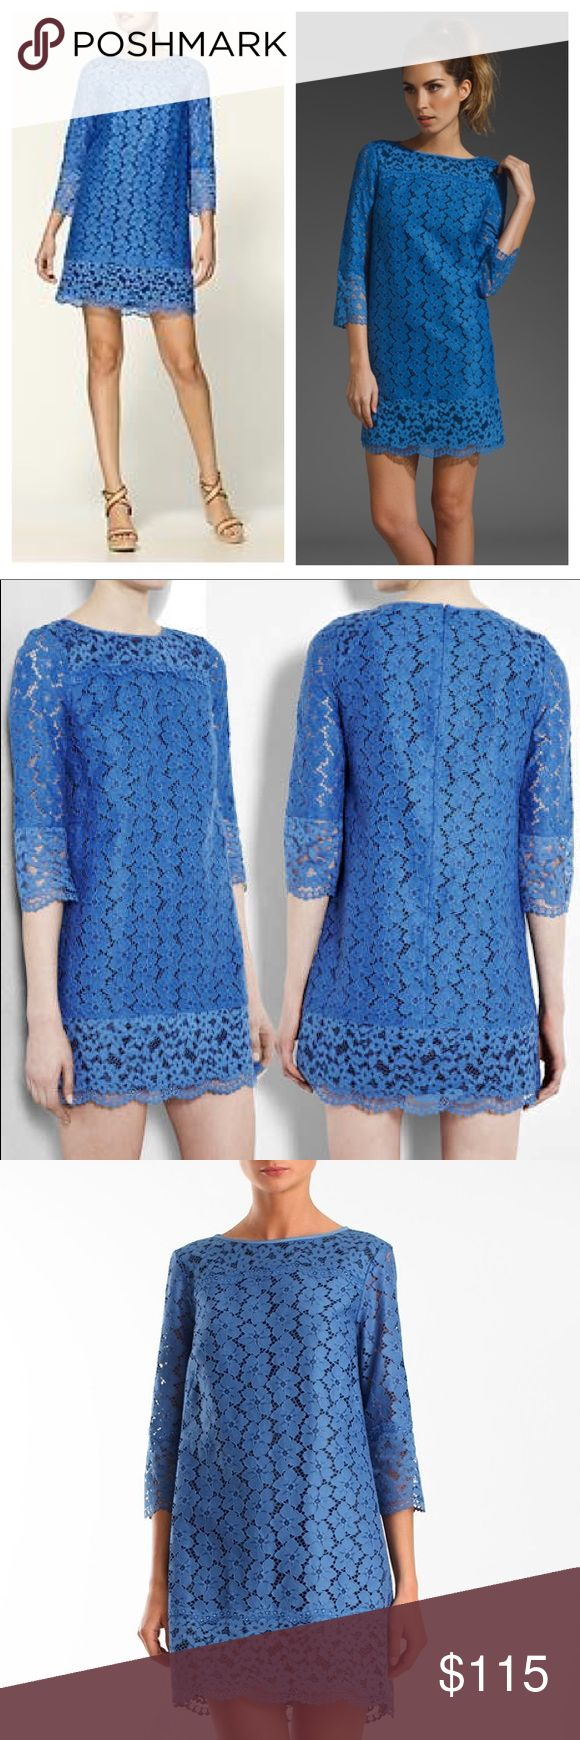 """Tibi Katya lace dress Stunning and in pristine condition! Authentic Tibi Katya blue lace dress with black lining. 3/4 length sleeves. Beautiful dress!!! Cotton and nylon. Length 34"""" pit to pit 18"""". Worn only twice. Tibi Dresses Wedding"""